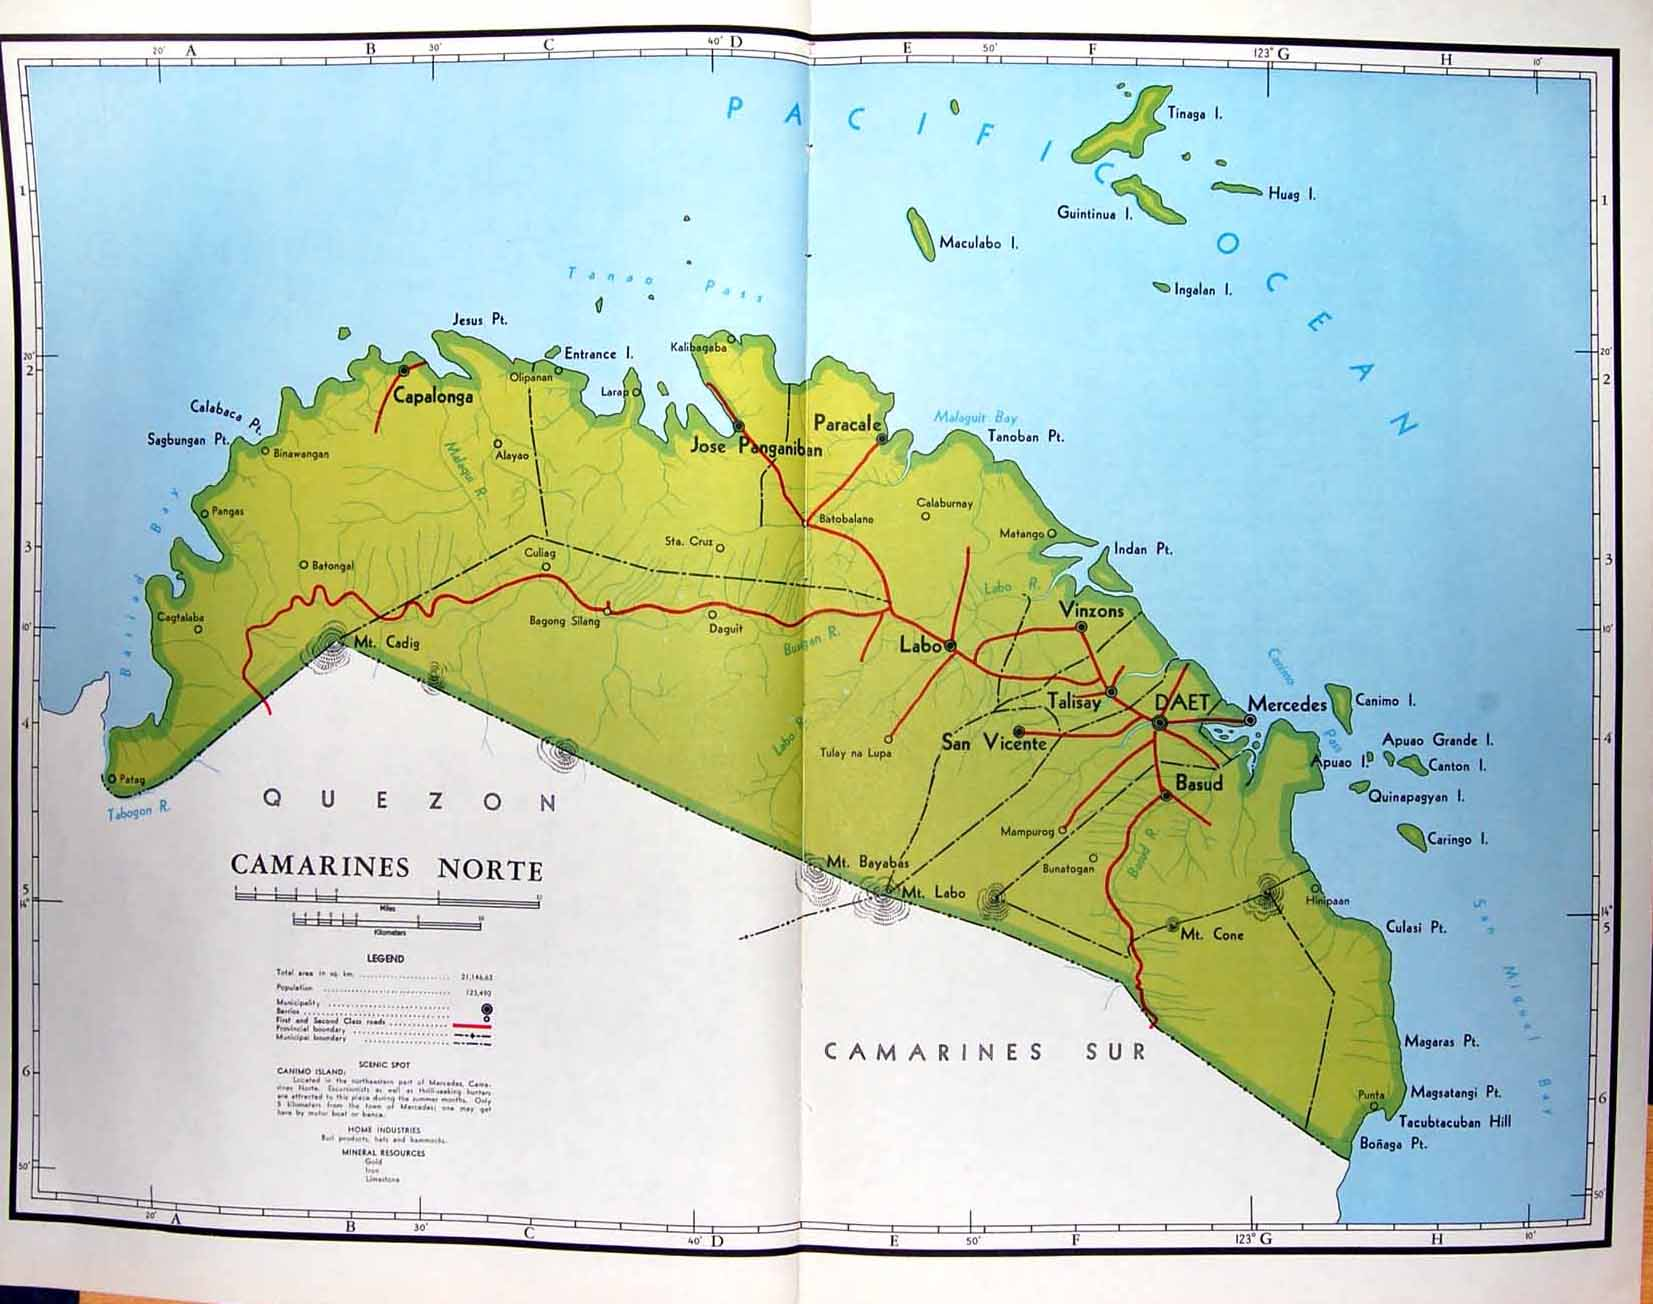 14 print colour map 1959 philippines camarines norte labo daet click for larger and then click again for extra large publicscrutiny Images